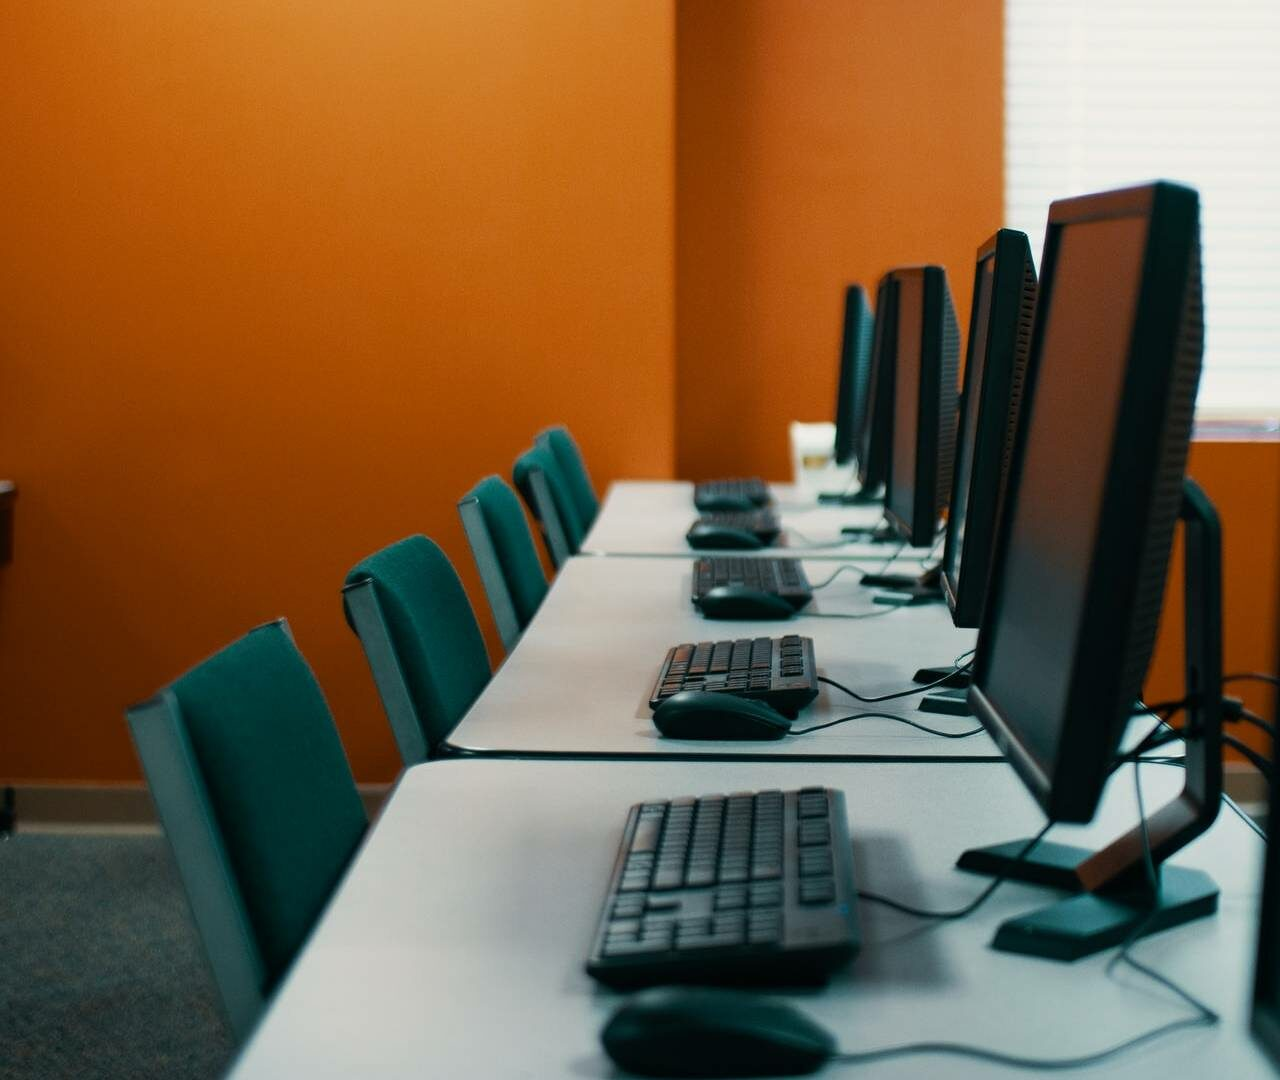 83% of HR leaders are considering a reduction in office space